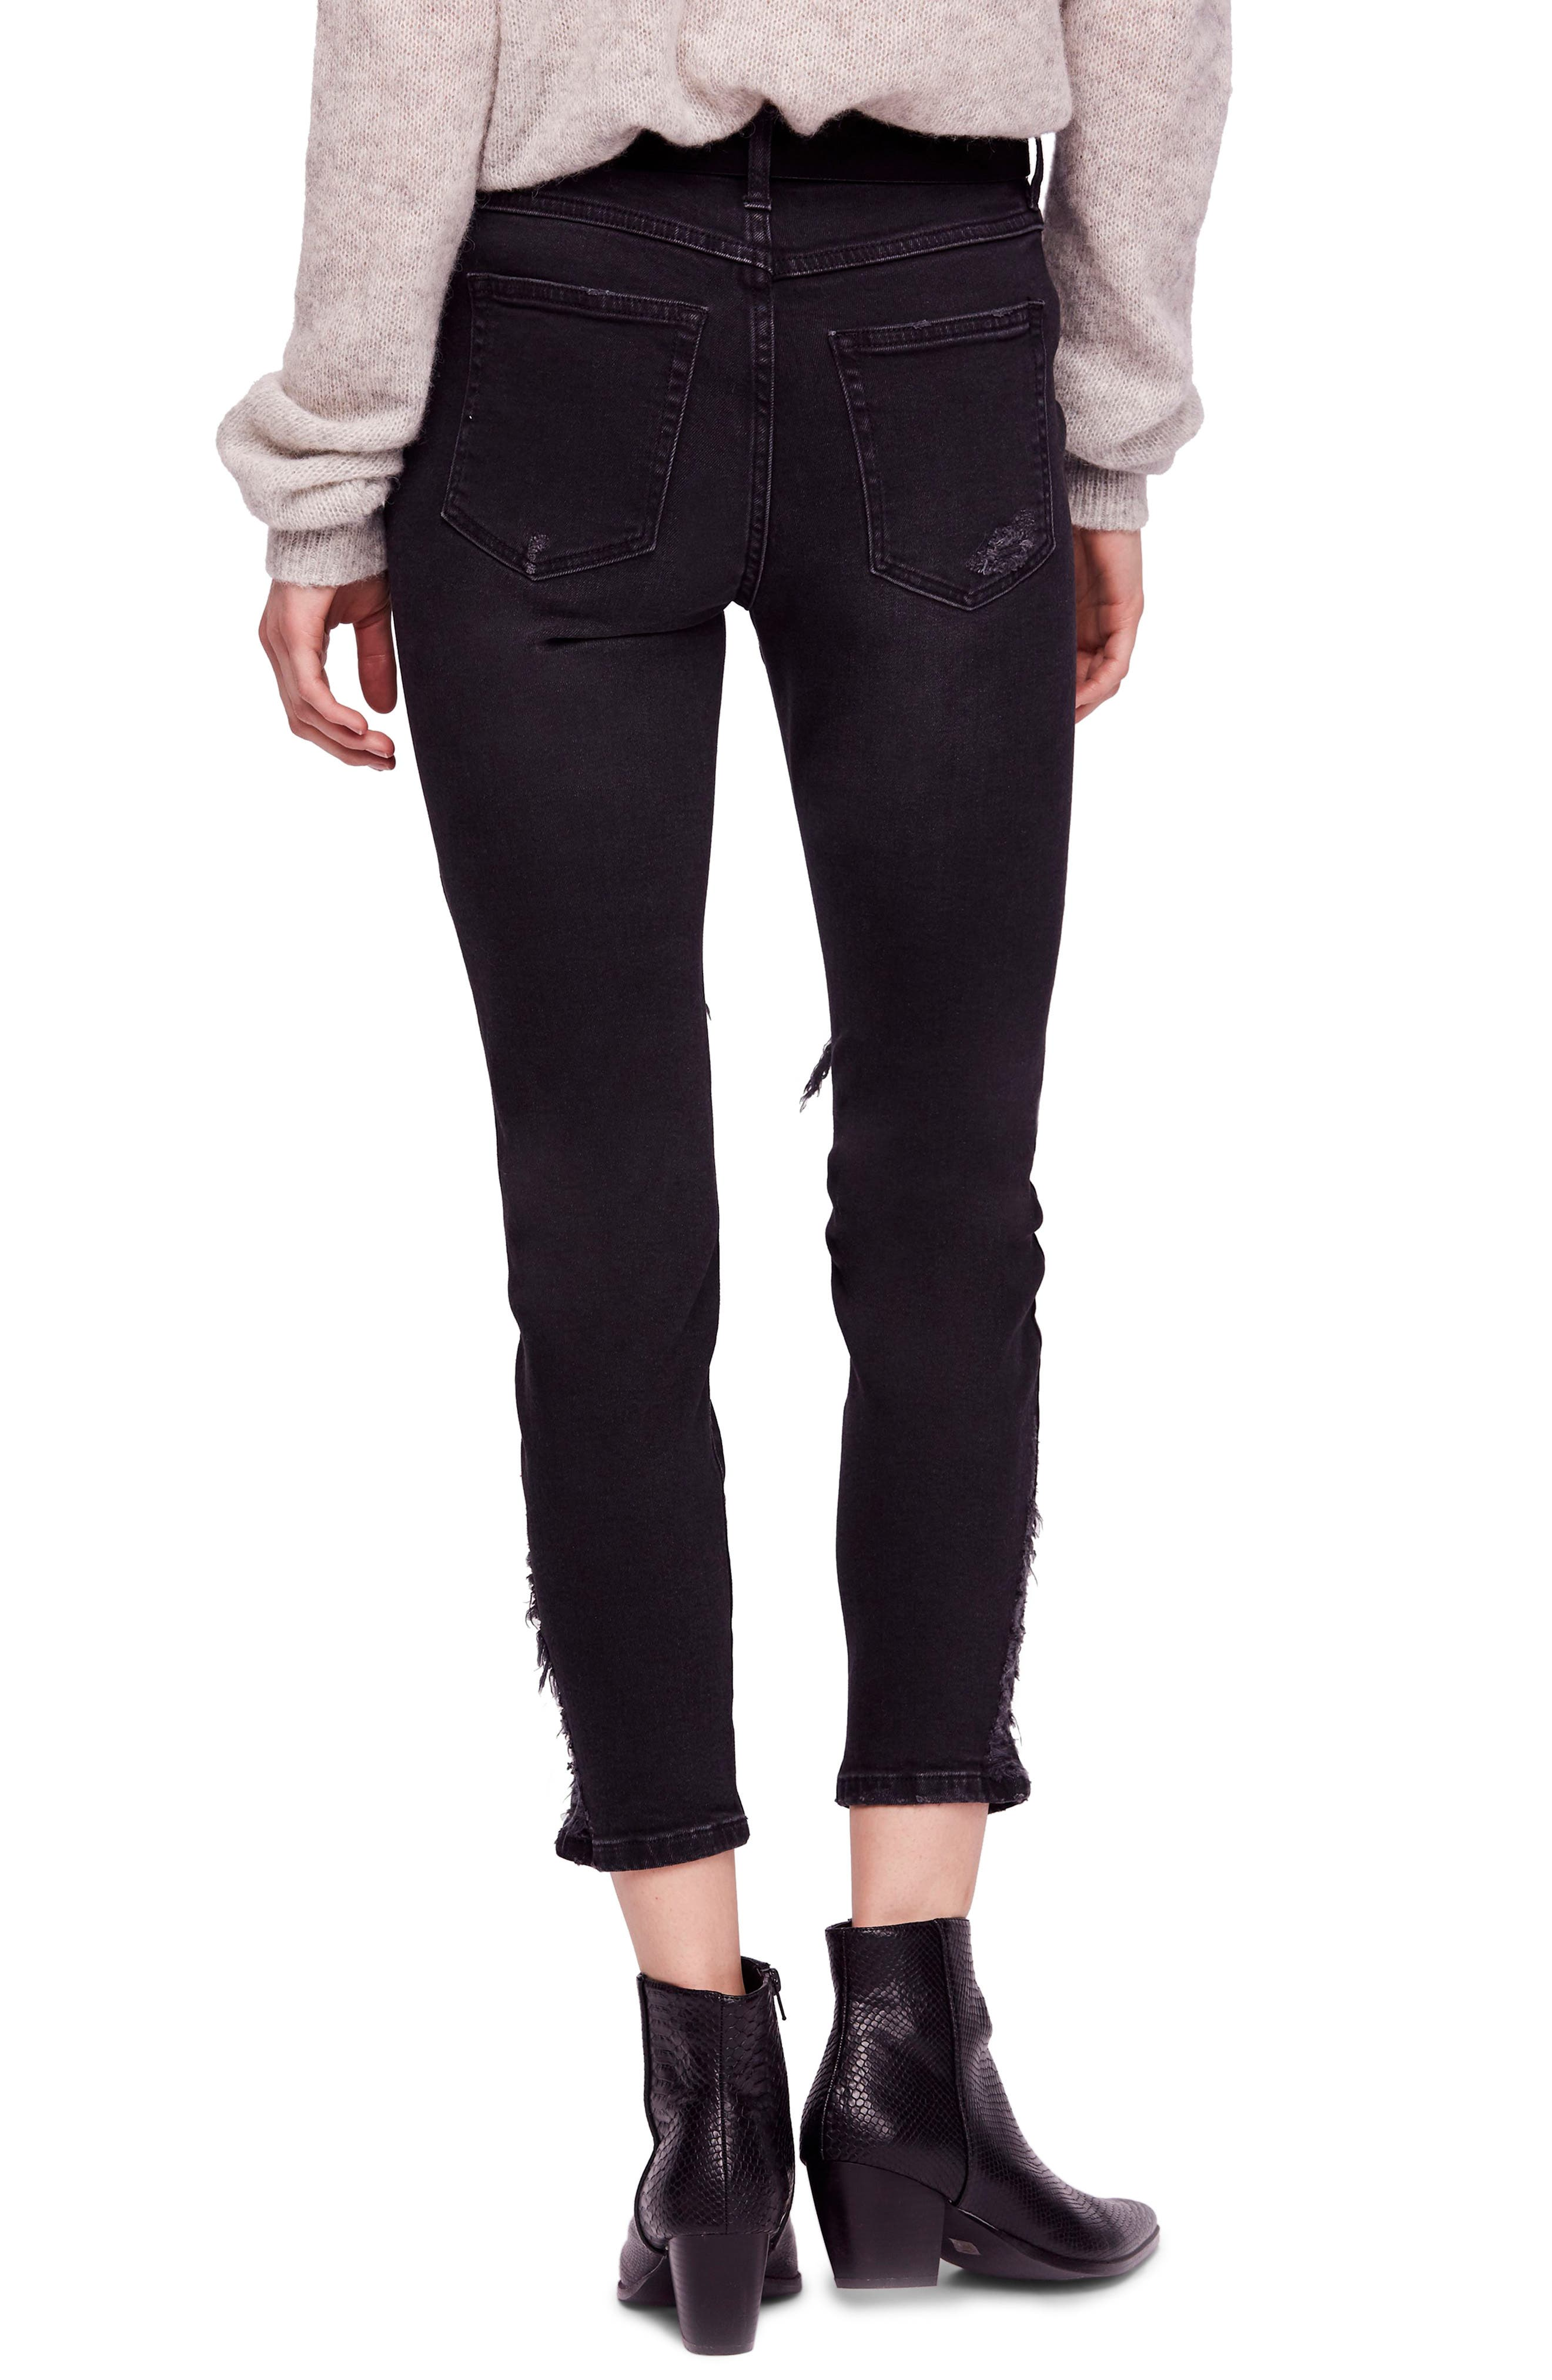 About a Girl Ripped High Waist Crop Skinny Jeans,                             Alternate thumbnail 2, color,                             BLACK